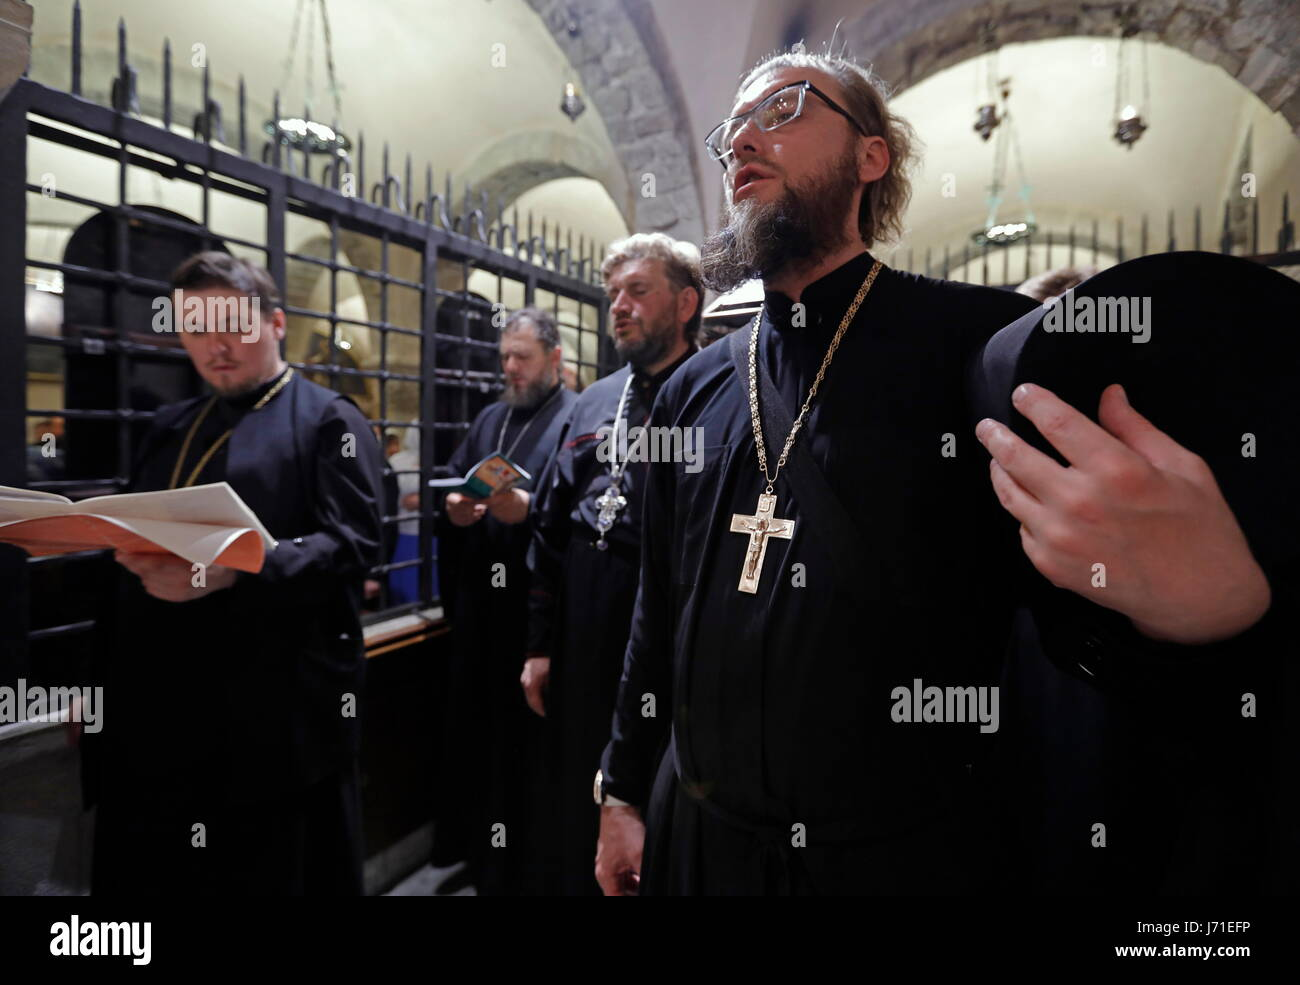 BARI, ITALY - MAY 20, 2017: Clergymen seen during a liturgy at the Basilica of Saint Nicholas ahead of sending an - Stock Image